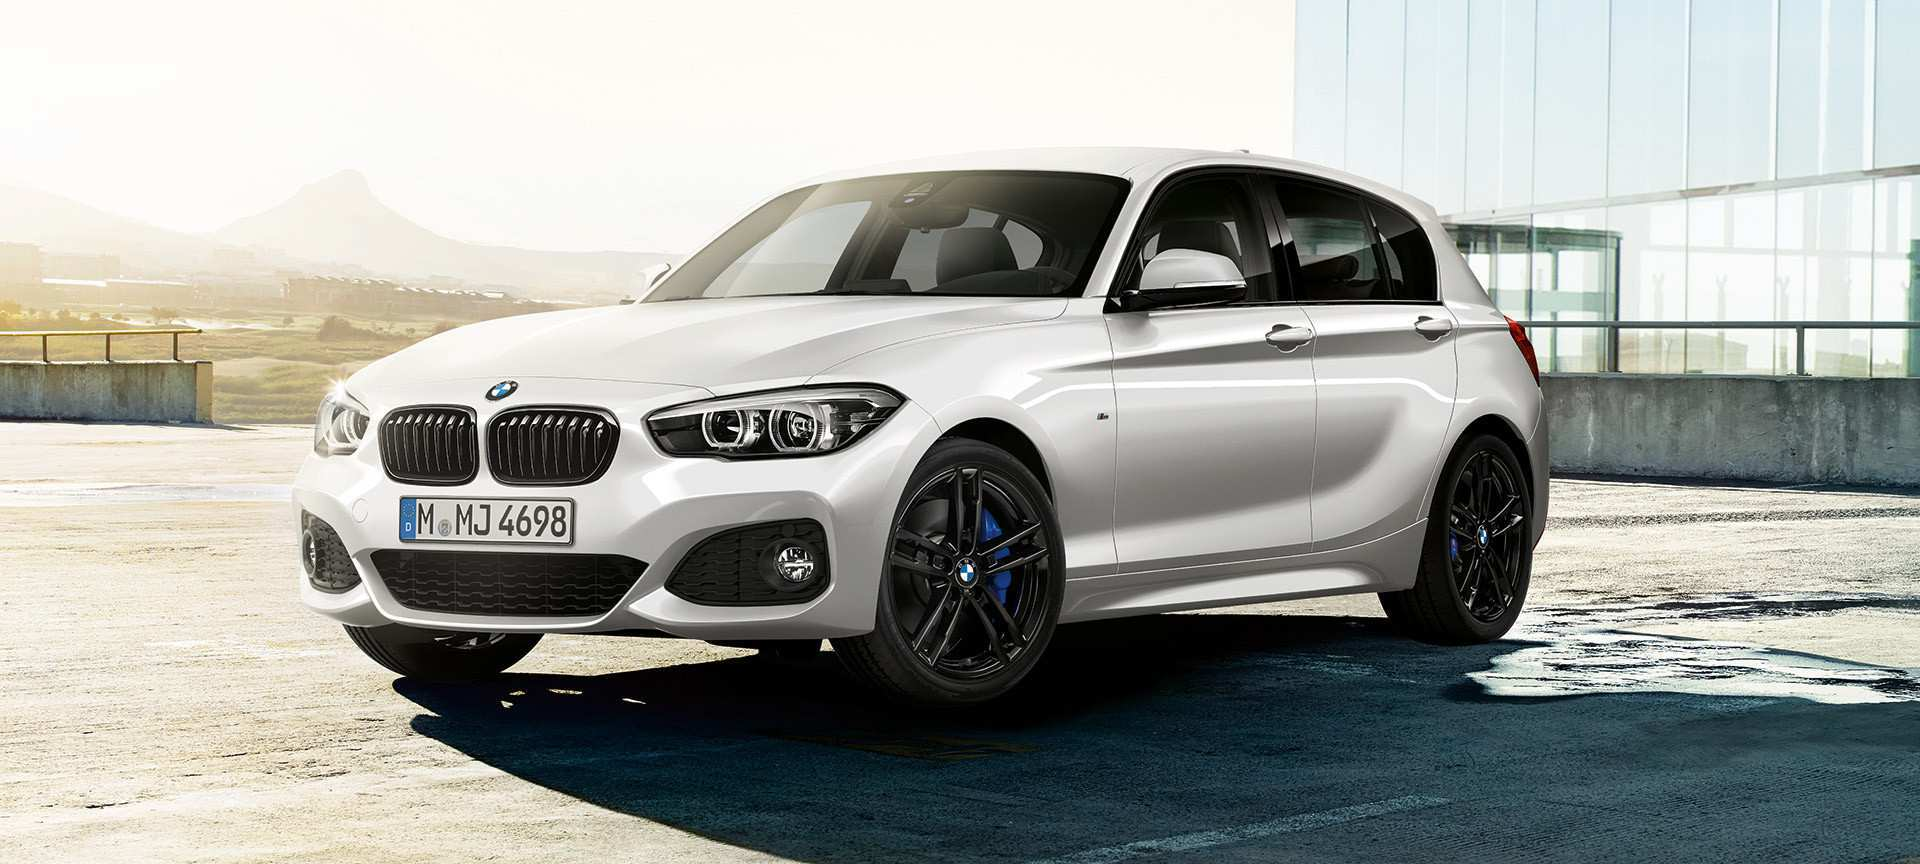 20 Great The The New Bmw 1 Series 2019 Price Interior With